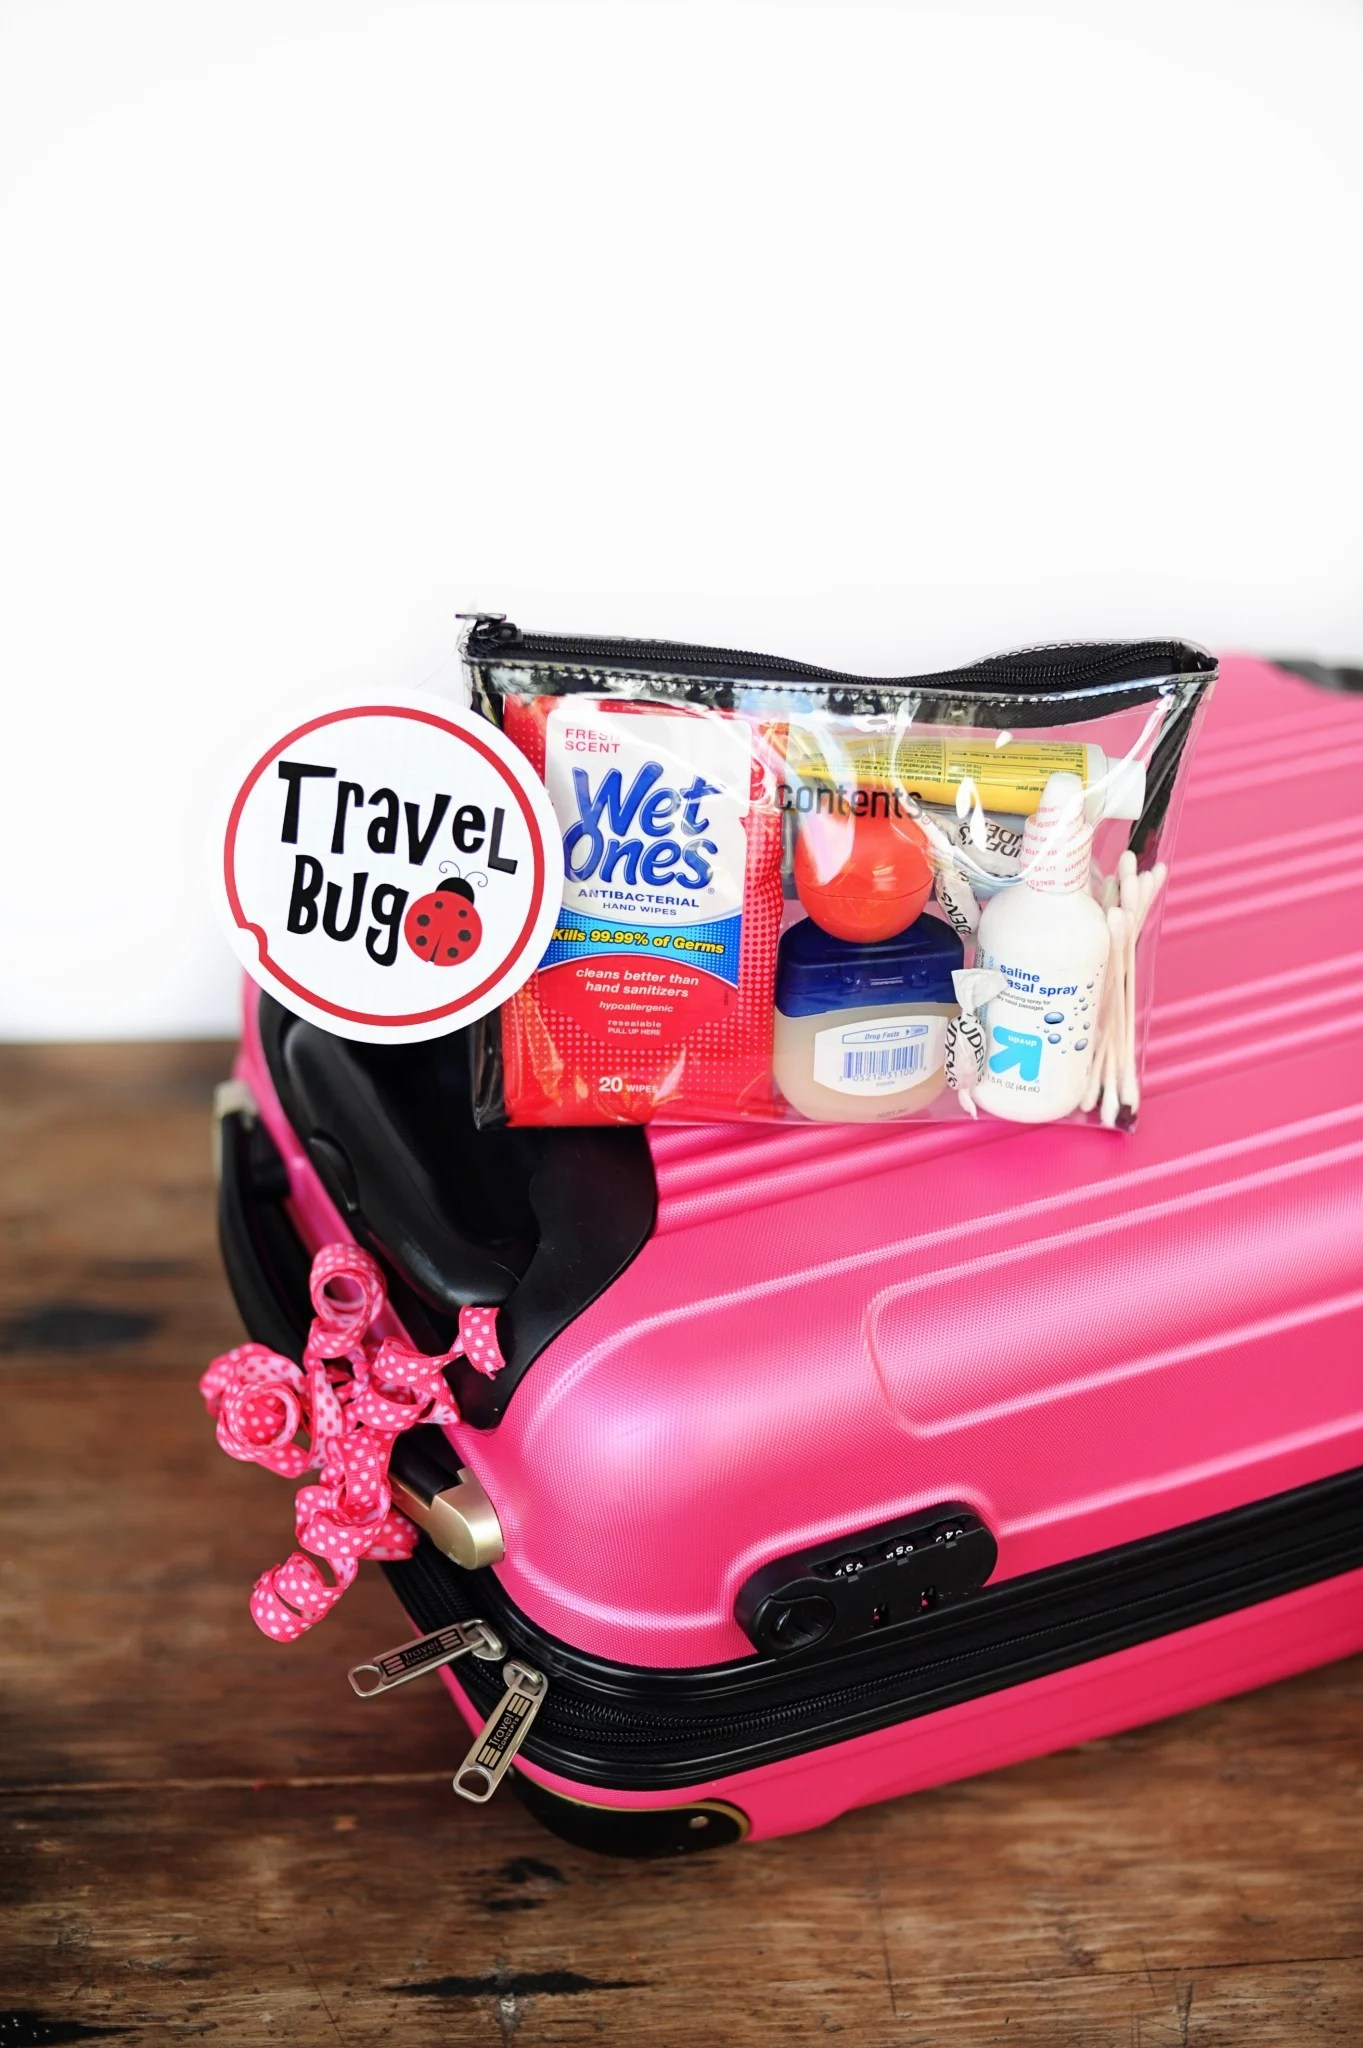 5 things to pack to help avoid getting sick while traveling